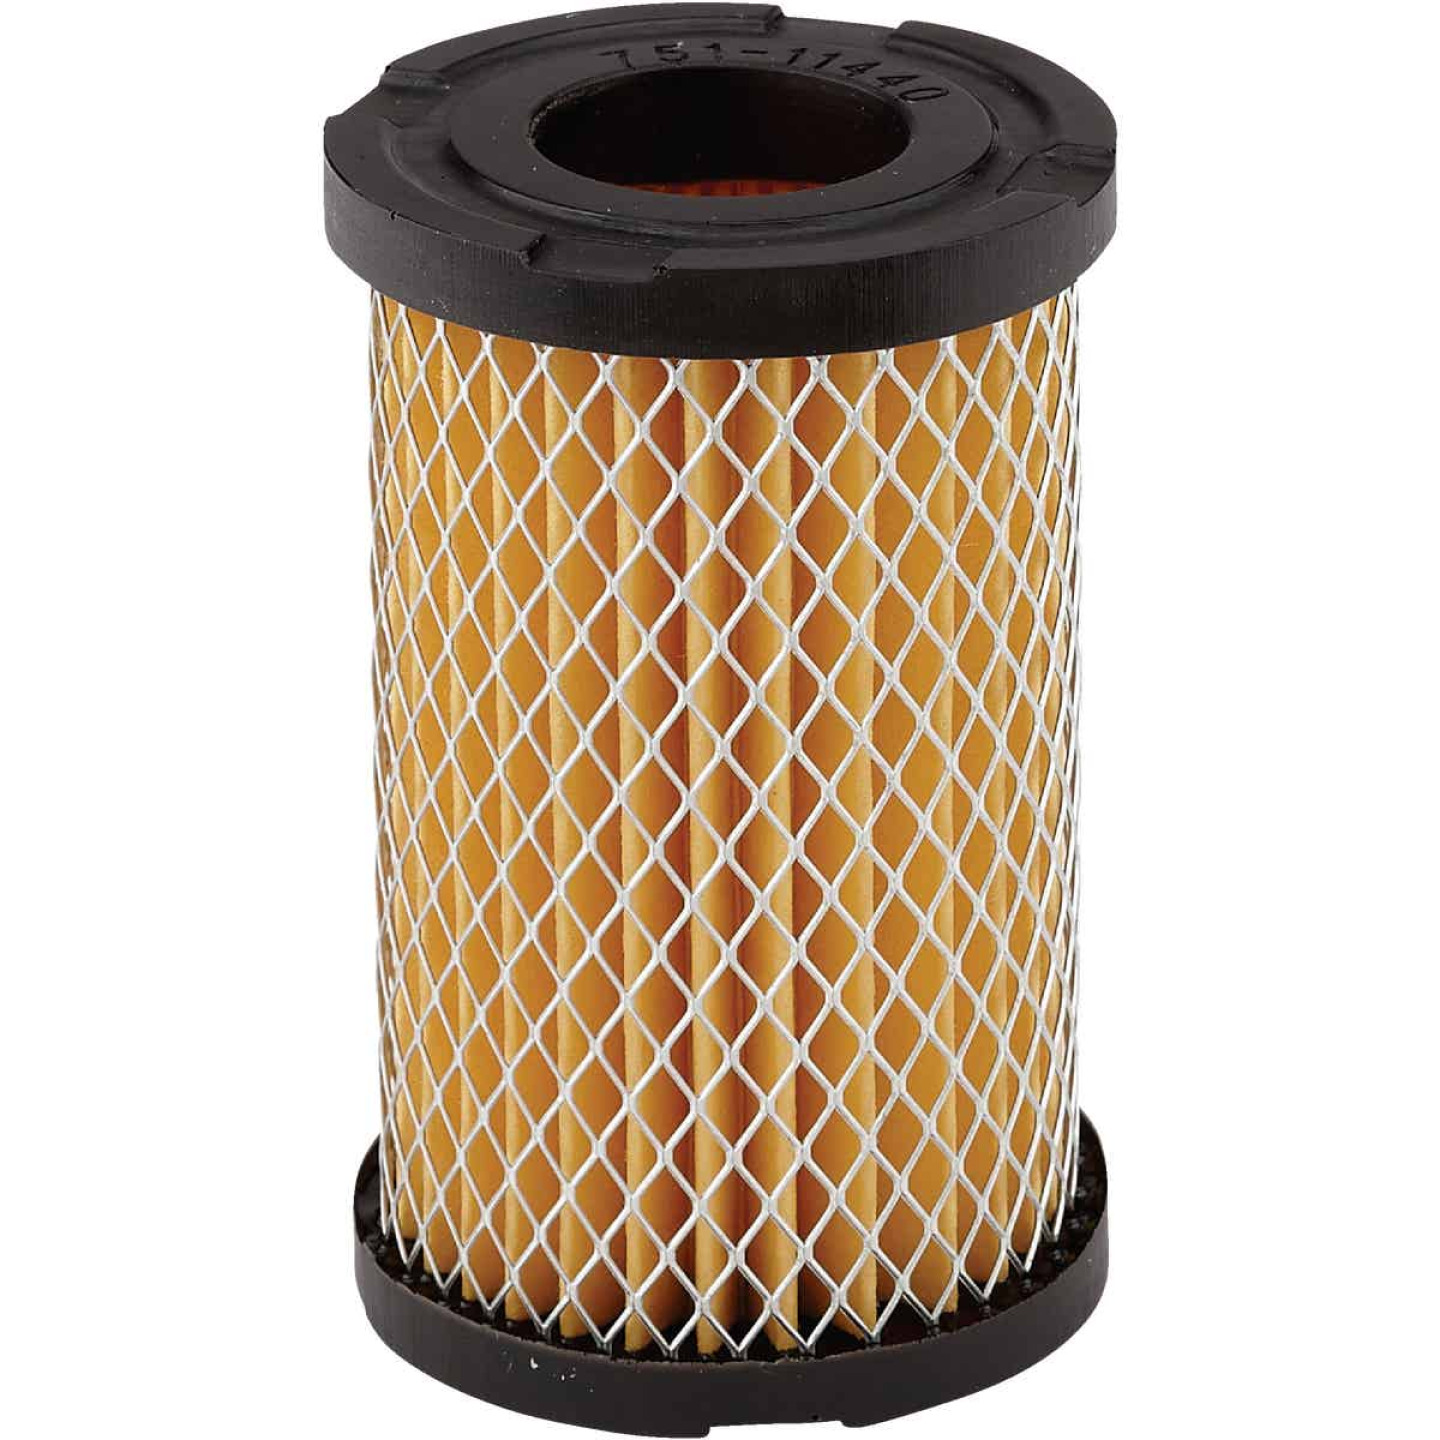 Arnold Tecumseh 3 To 4.5 HP Paper Engine Air Filter Image 1